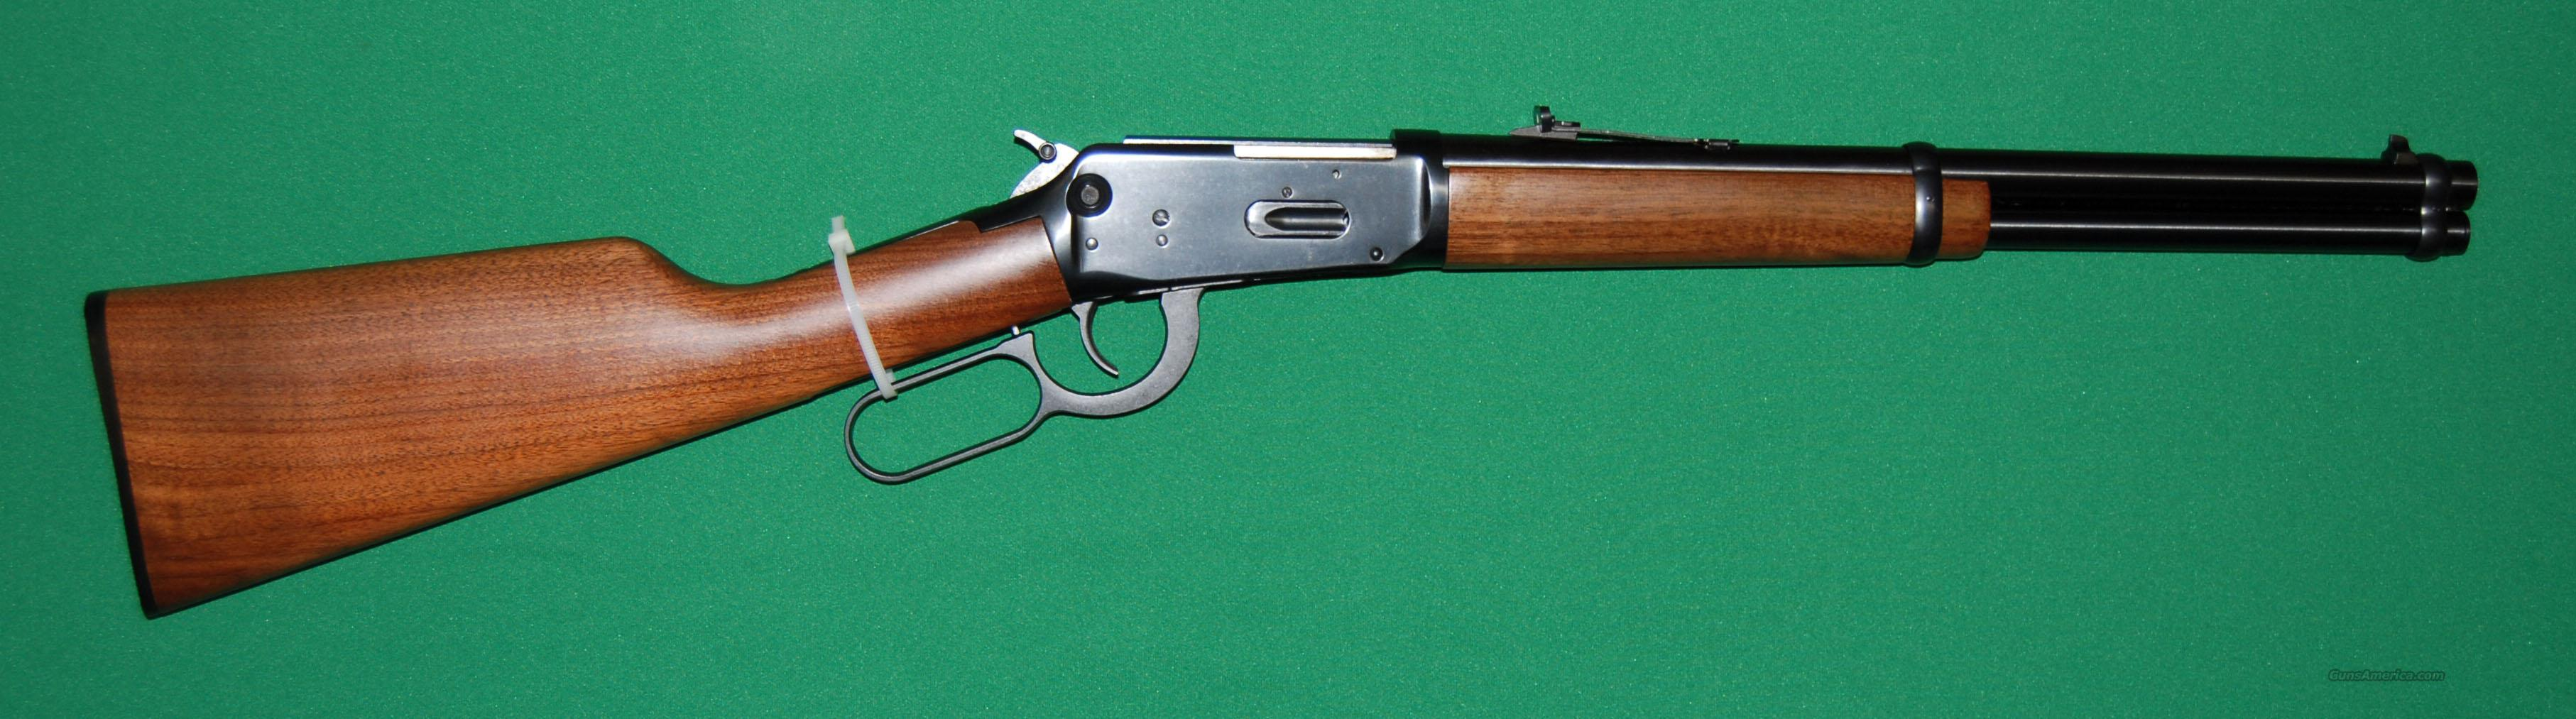 Winchester 94 AE Trapper, used  Guns > Rifles > Winchester Rifles - Modern Lever > Model 94 > Post-64